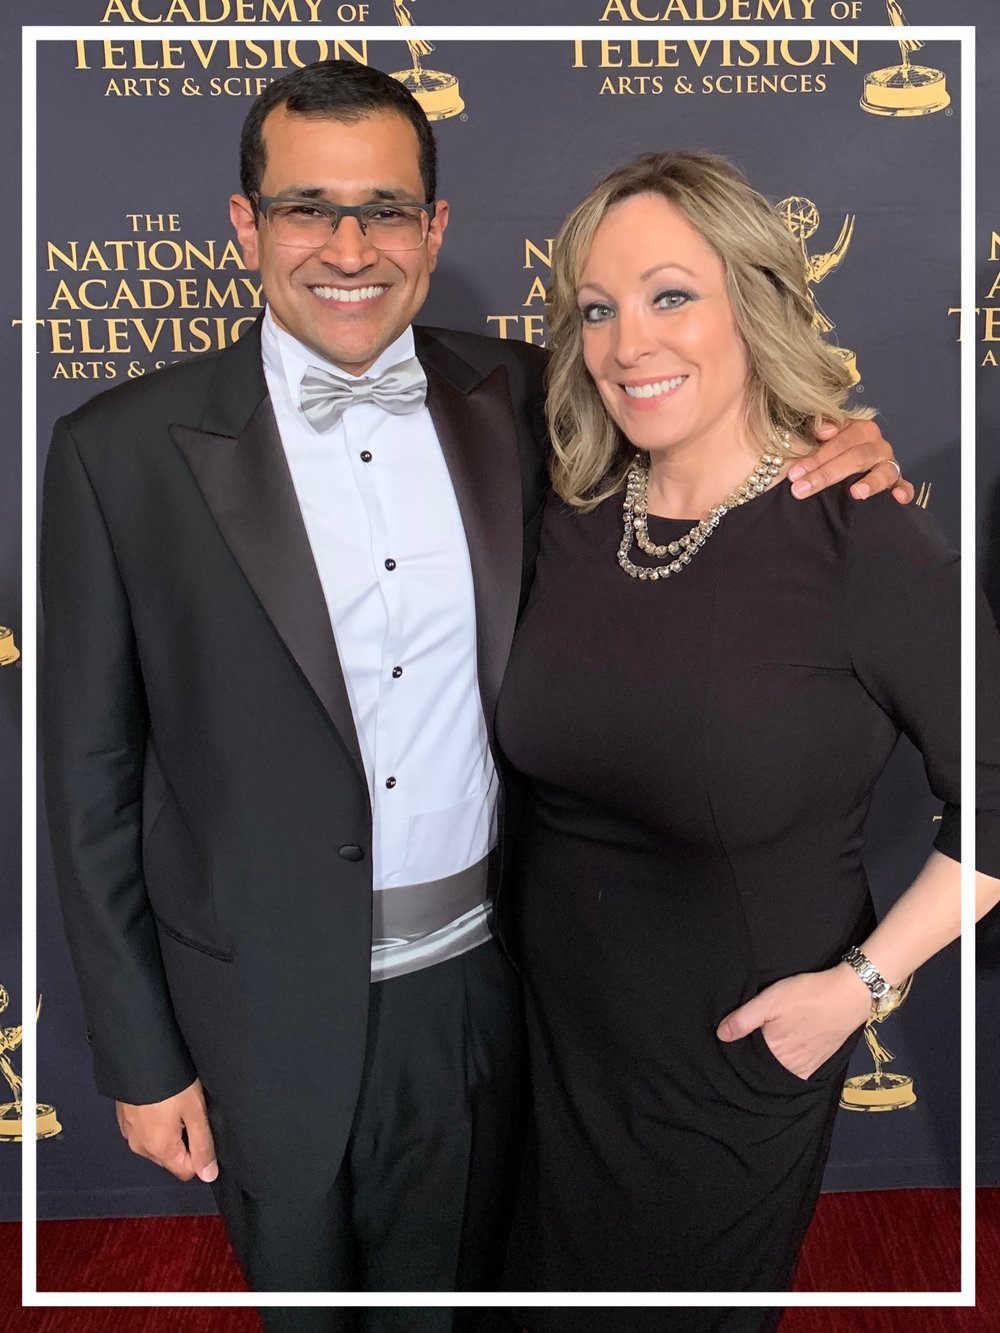 On the red carpet with Al Jazeera's White House Correspondent Kimberly Halkett, at the 2018 News Emmy Awards in New York (2018)